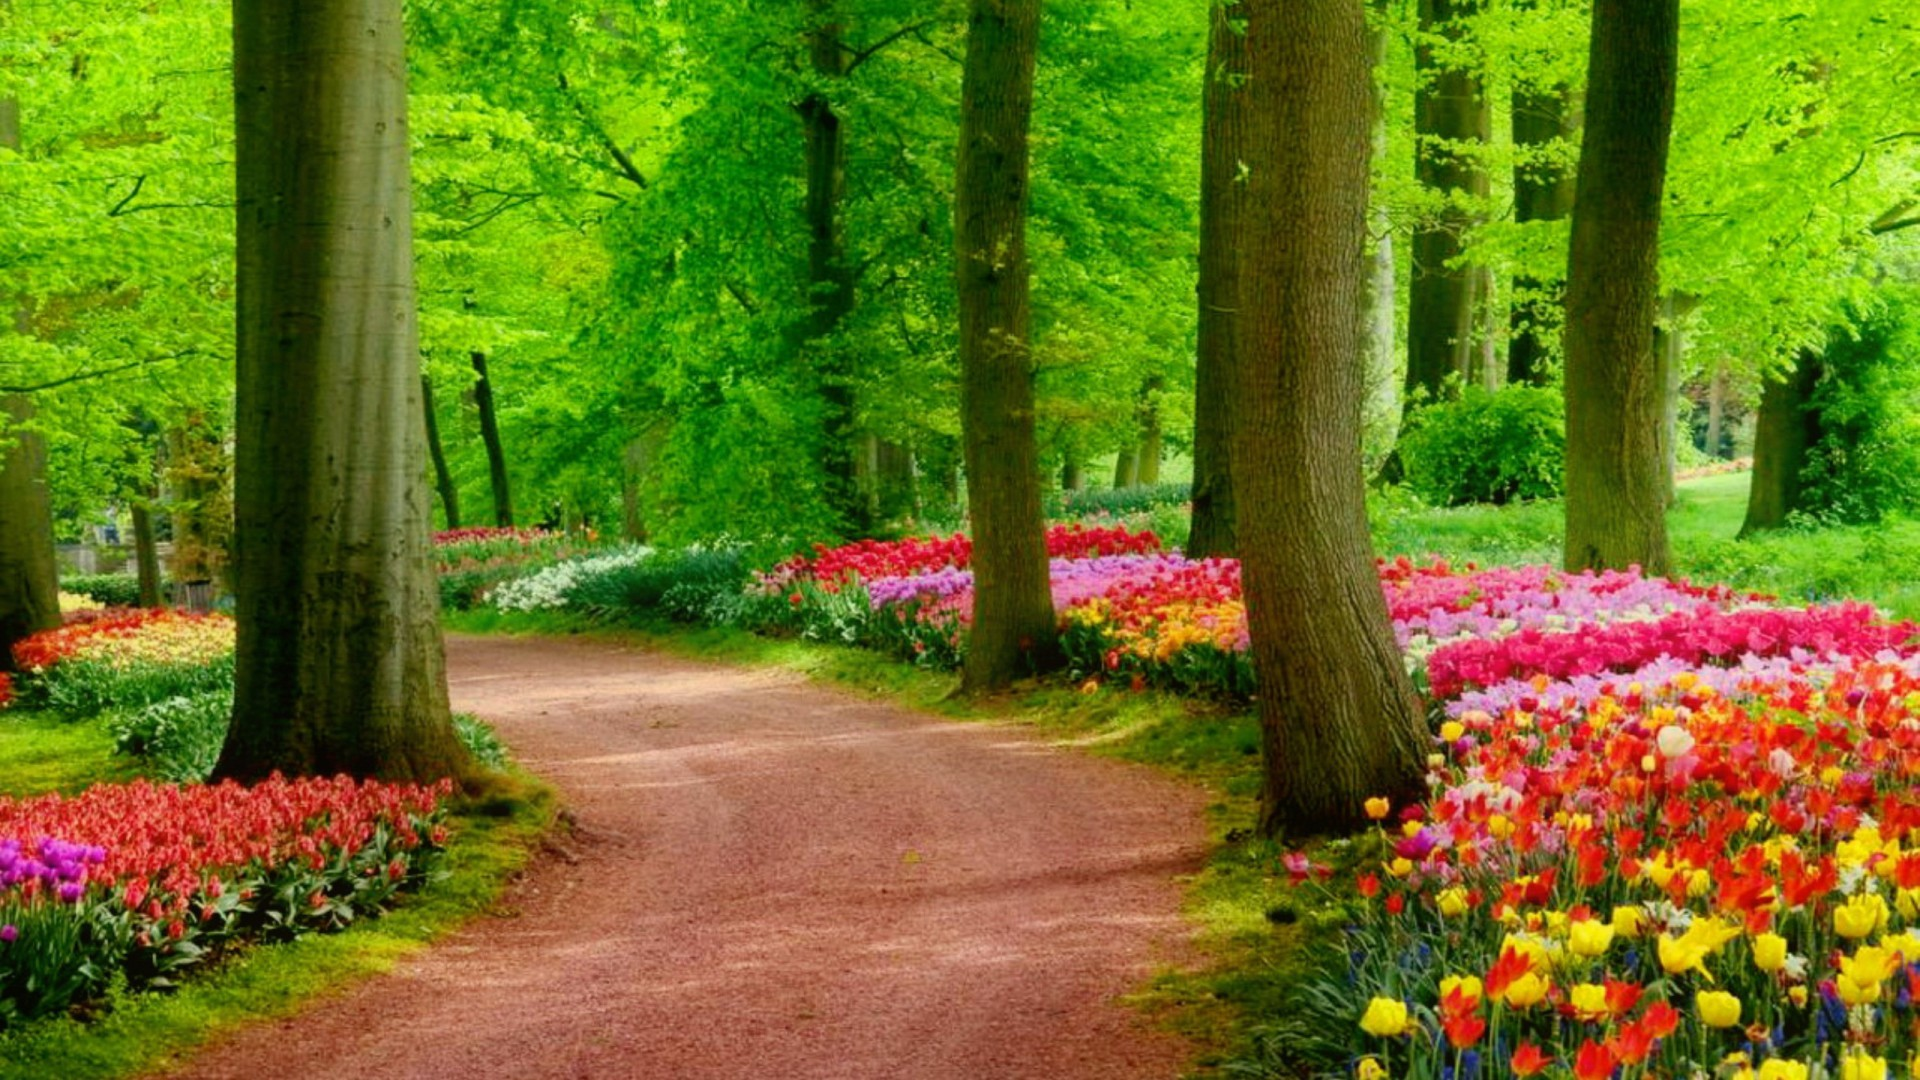 Hd Nature Wallpapers 1080p Zip File Download ✓ The Best HD